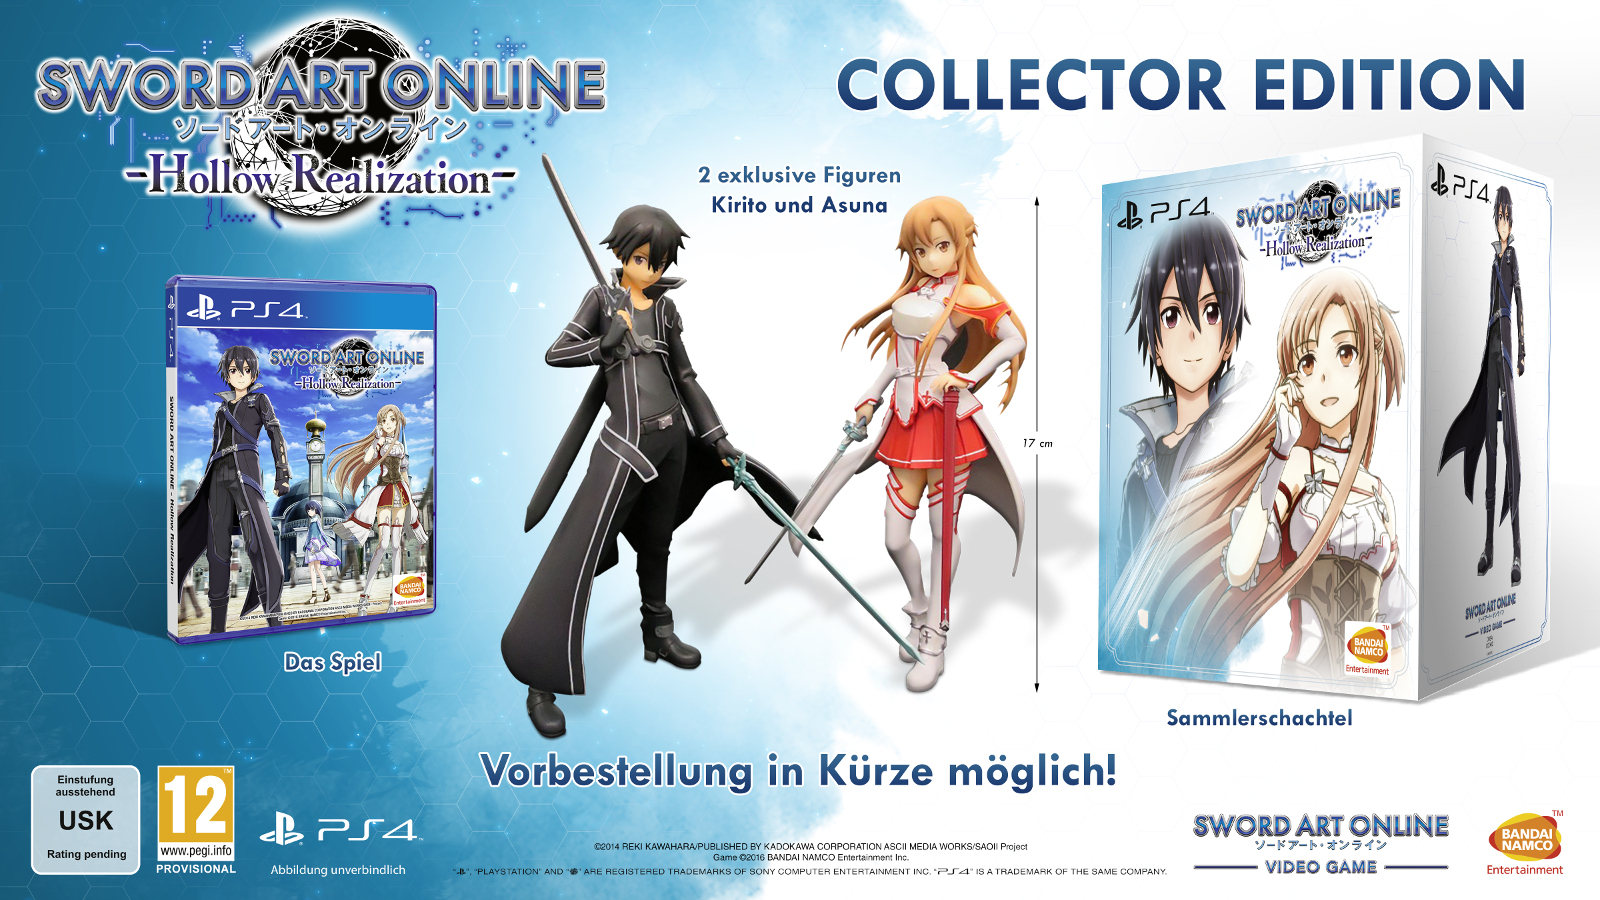 SwordArtOnline-HollowRealization_Mockup_Collector_B_GE